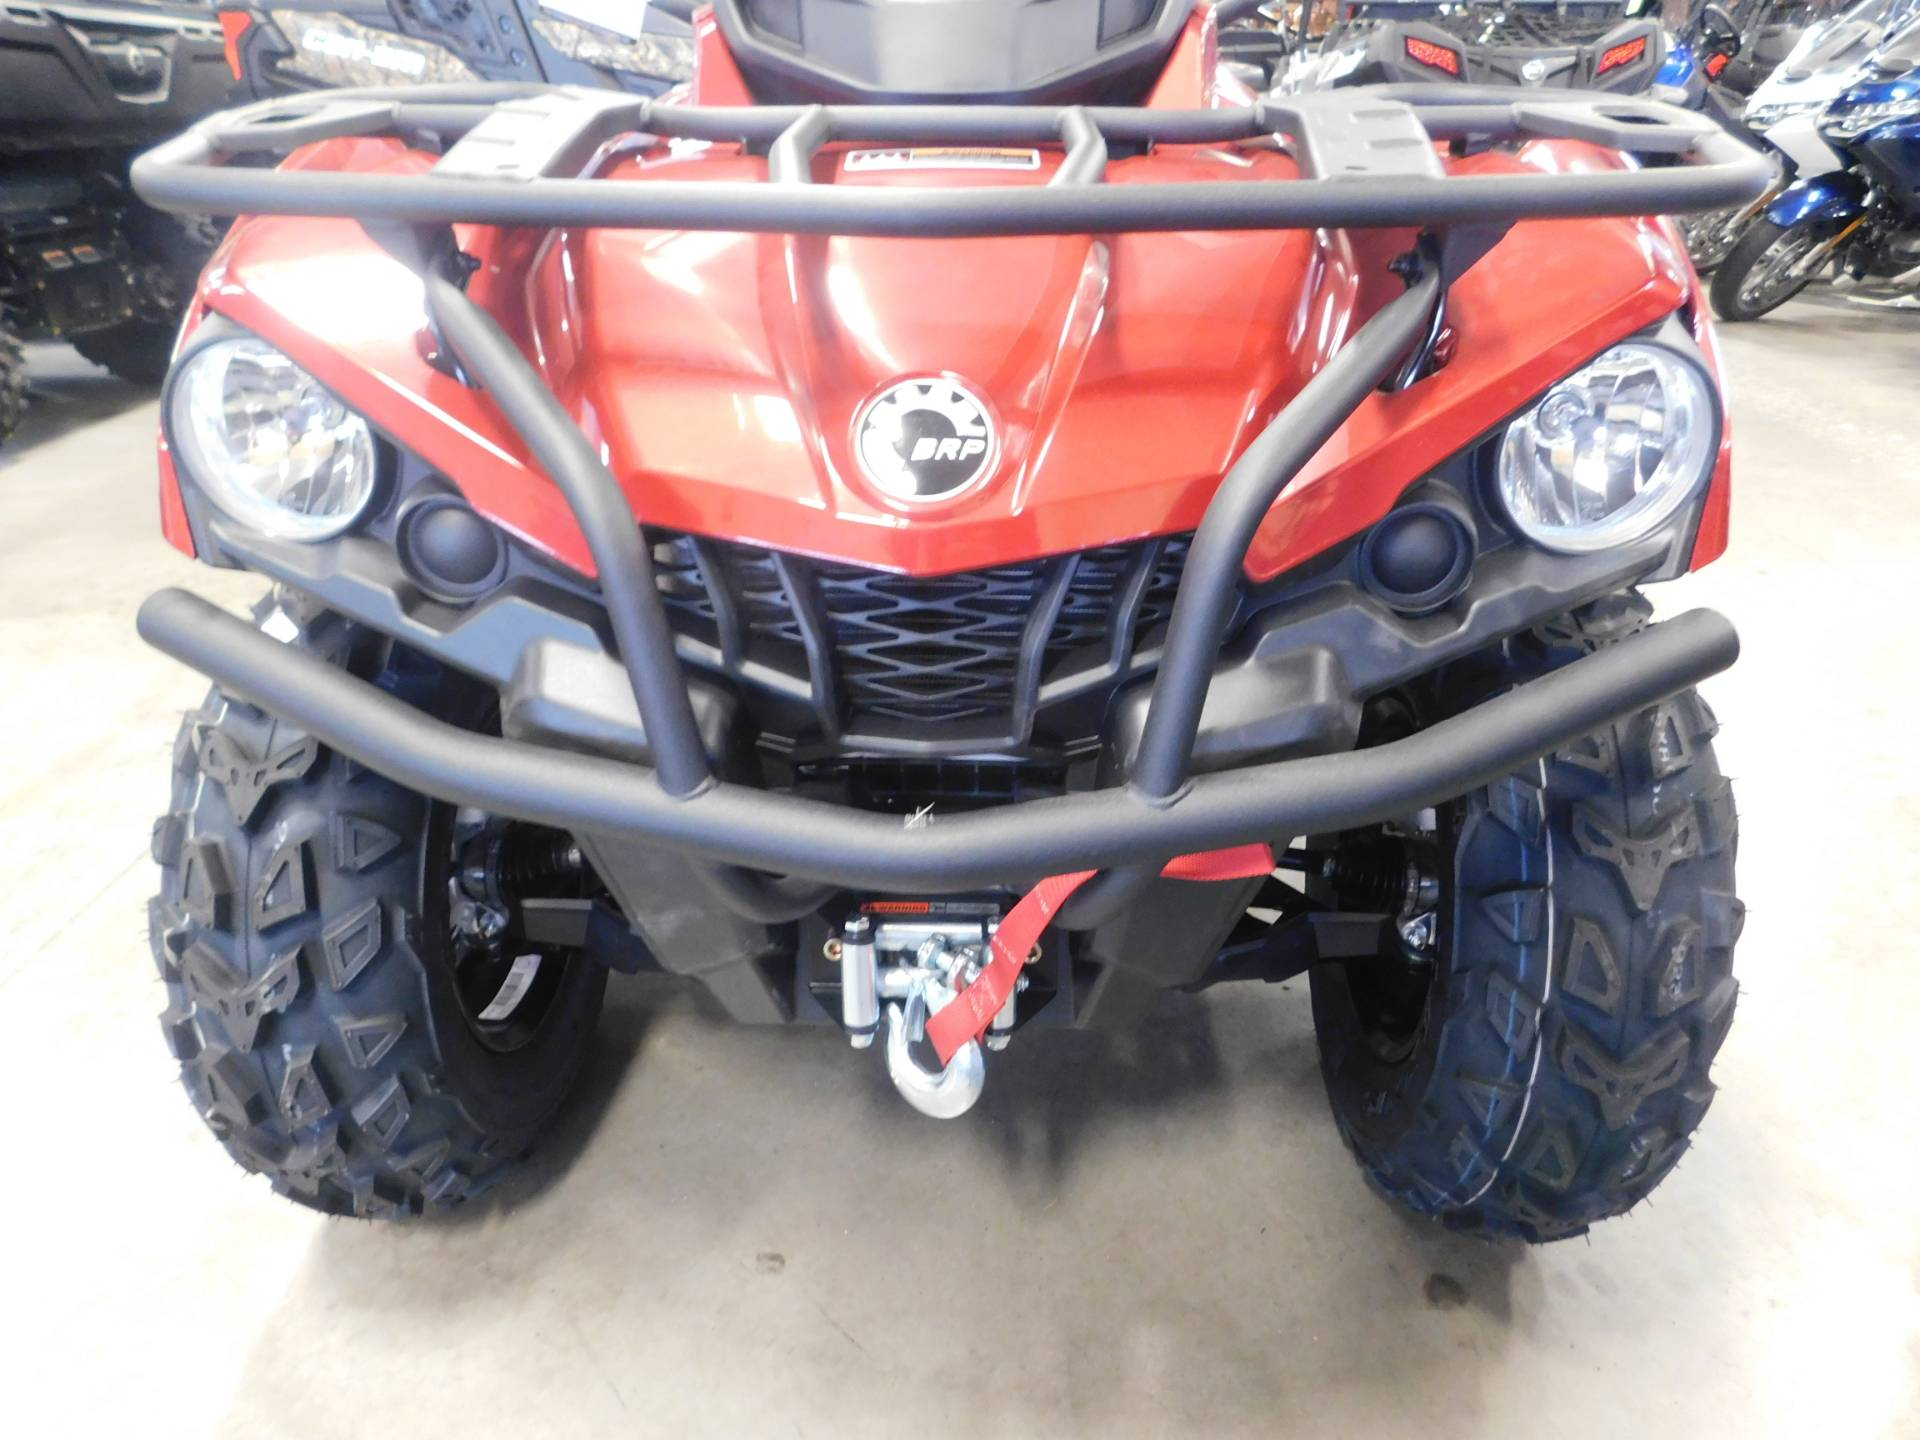 2019 Can-Am™ Outlander MAX XT 570 4